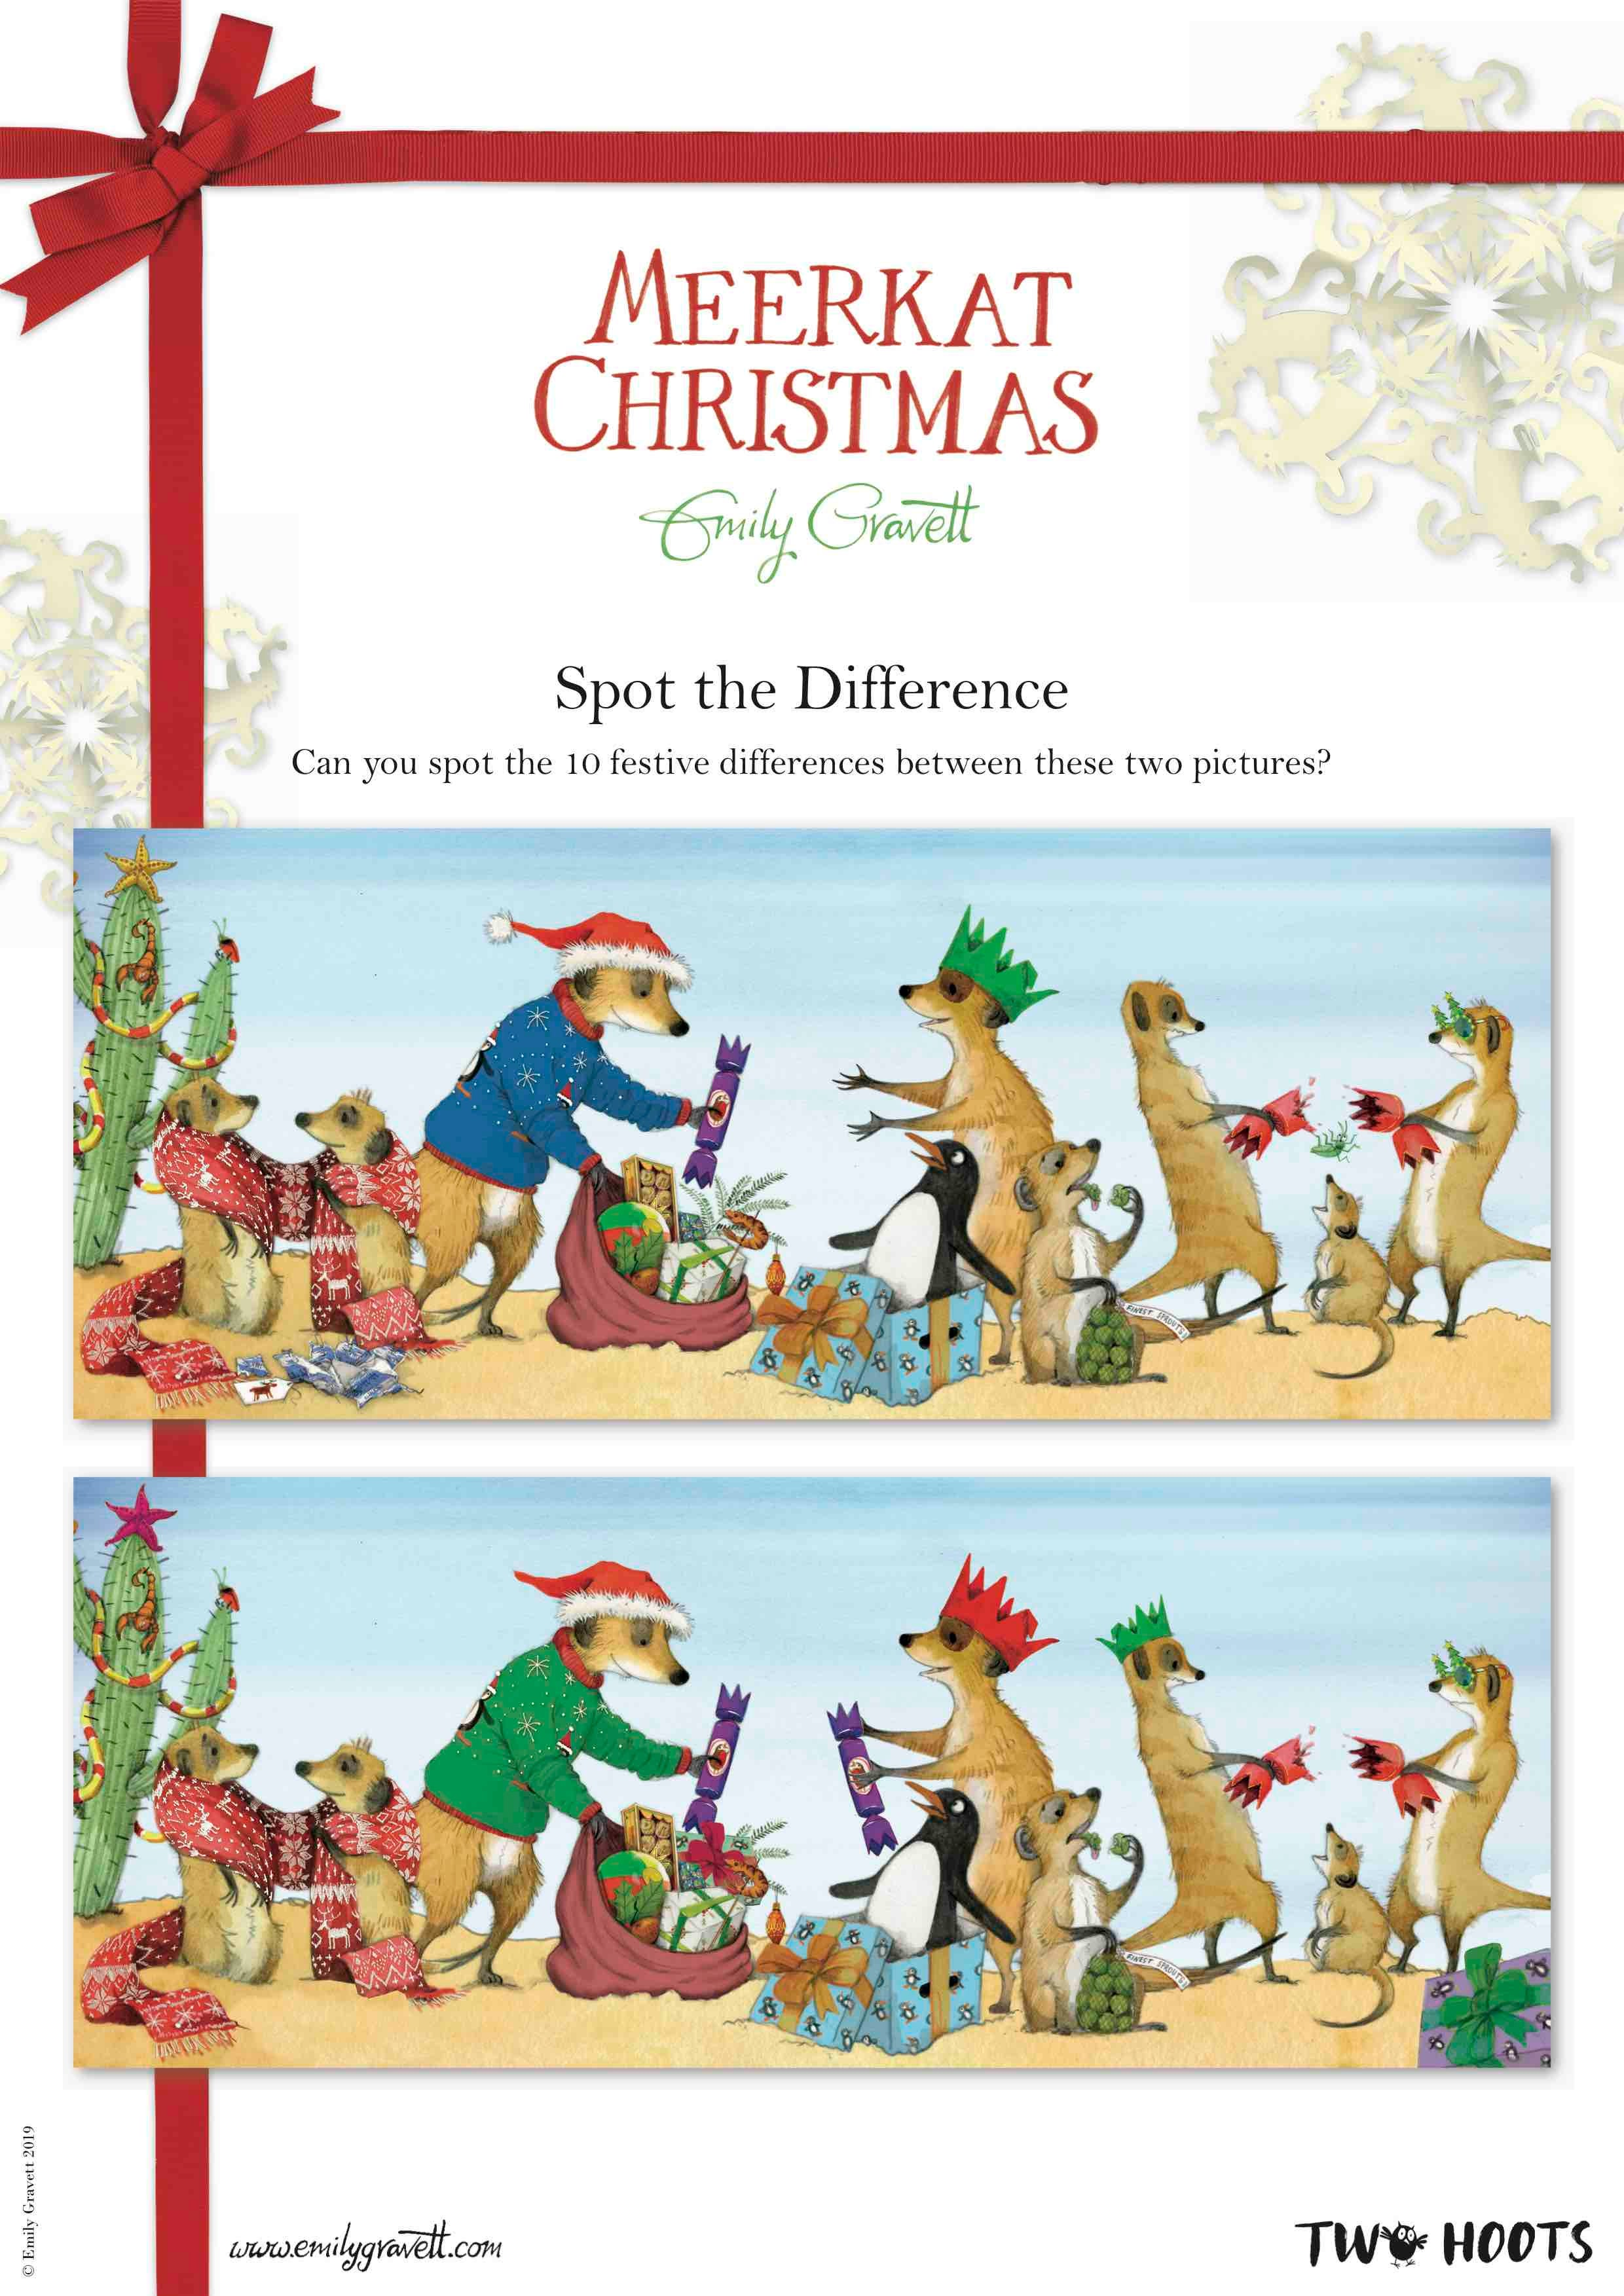 Meerkat-Christmas-Spot-the-Difference-web-image.jpg